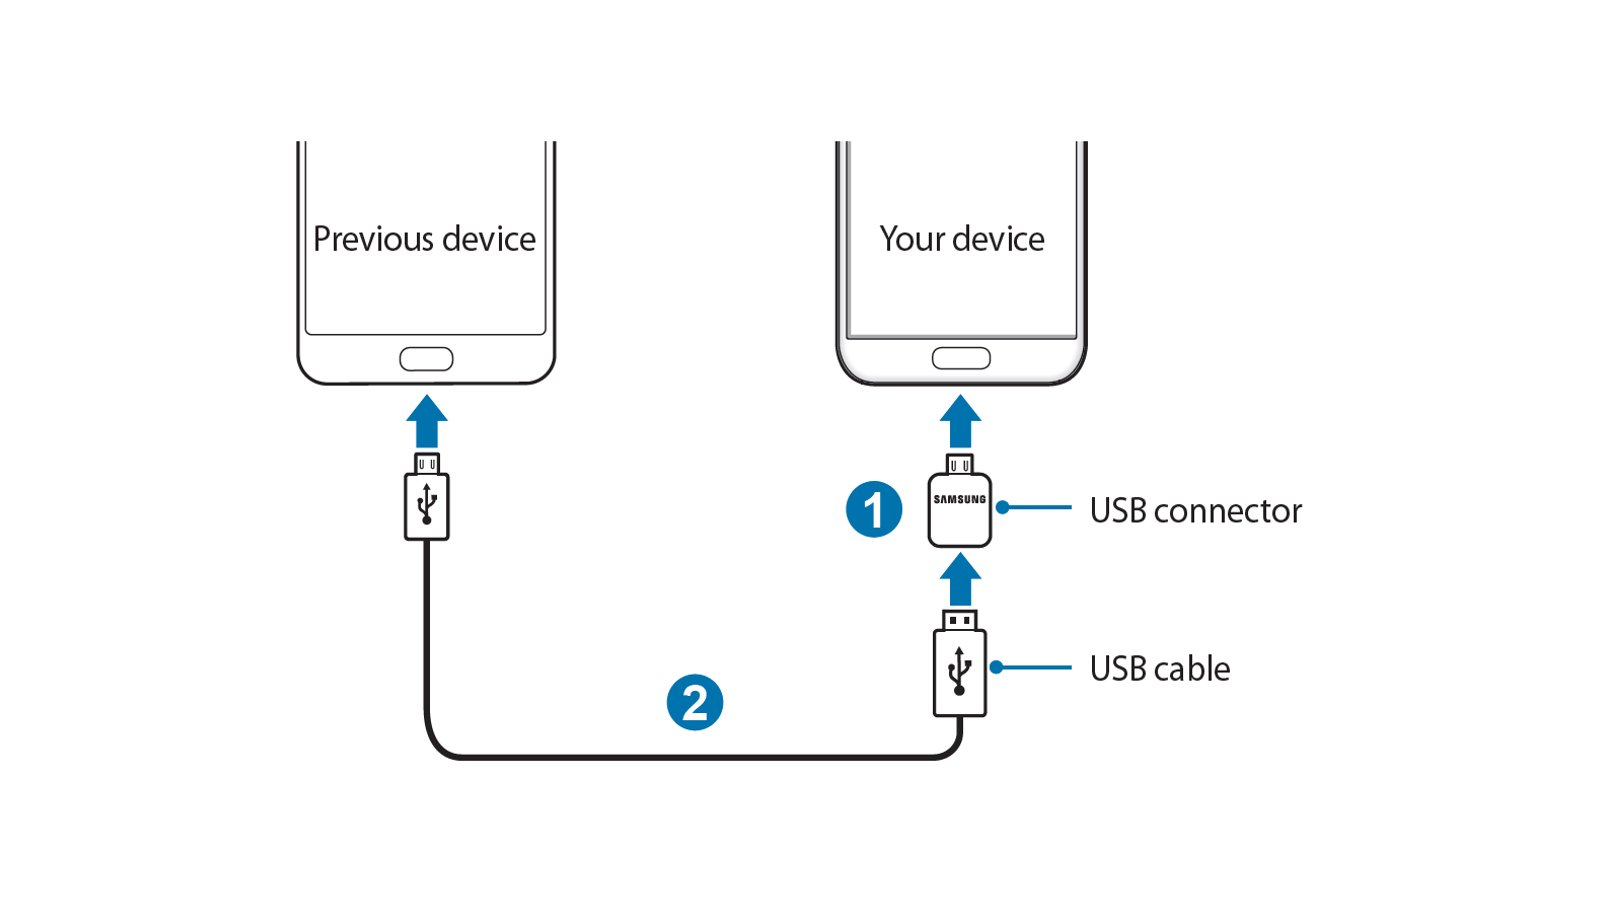 How To Use Samsung Smart Switch To Transfer Data From Your